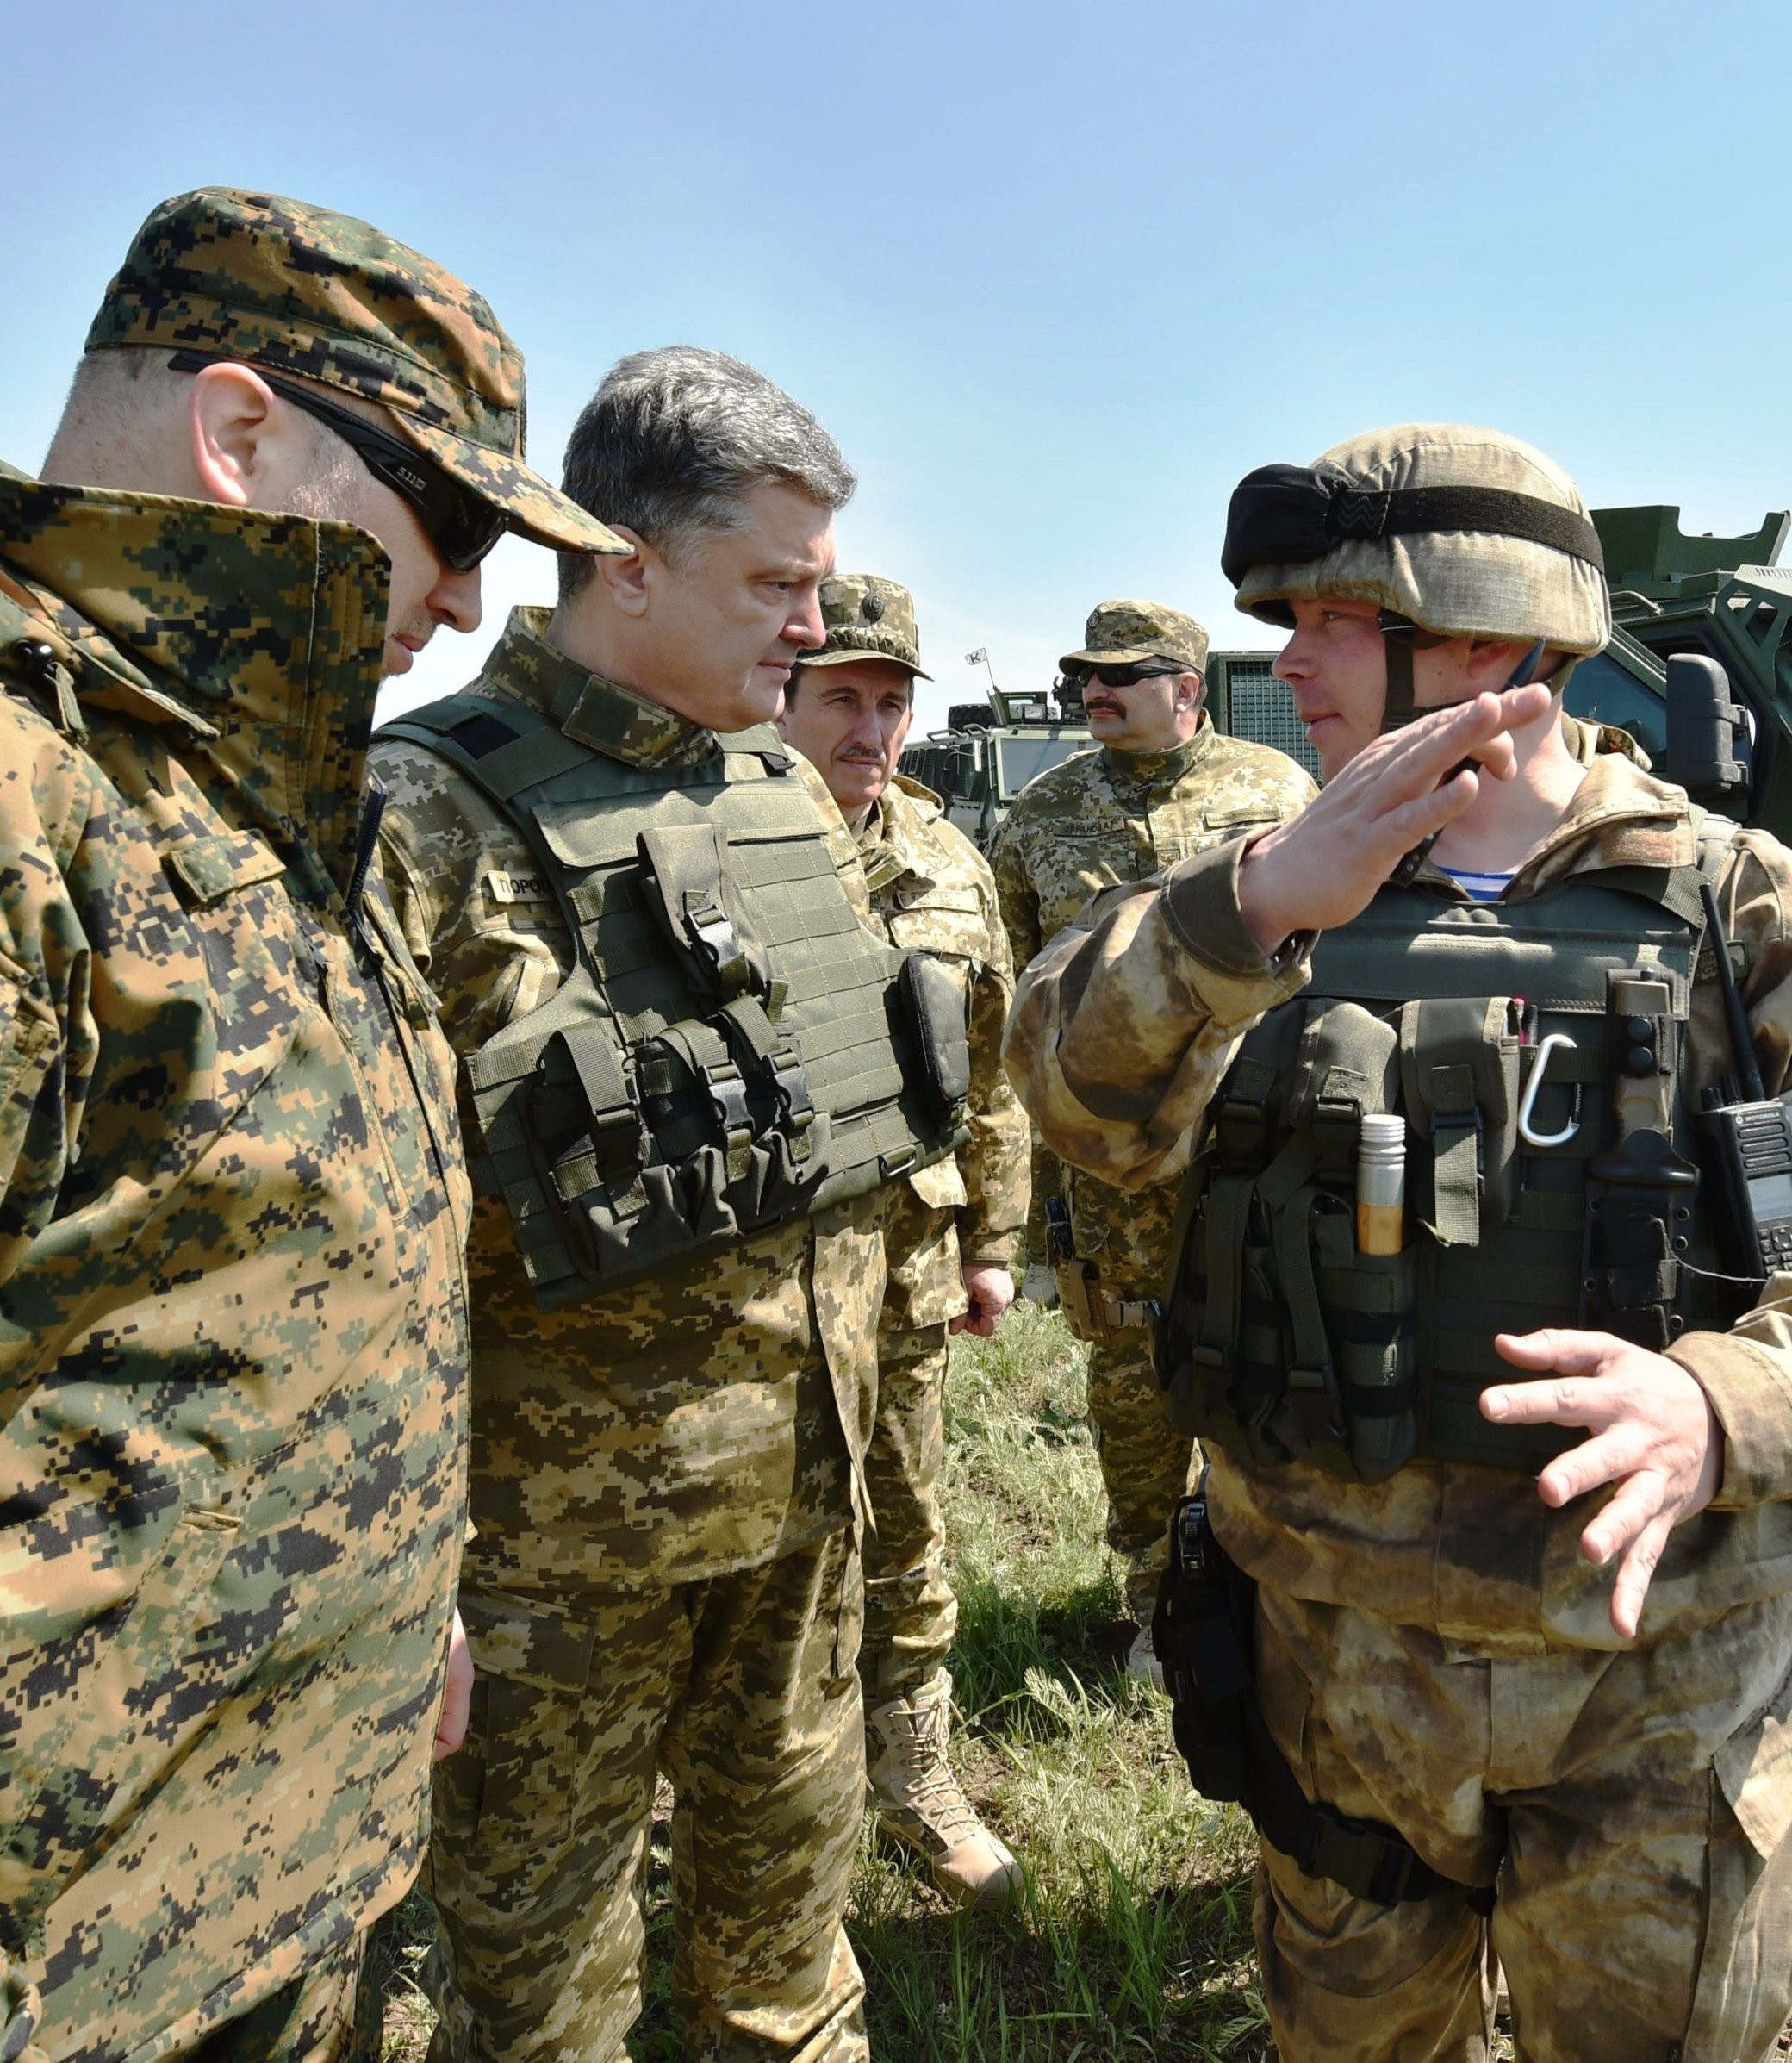 Poroshenko say martial law ready if troops attacked